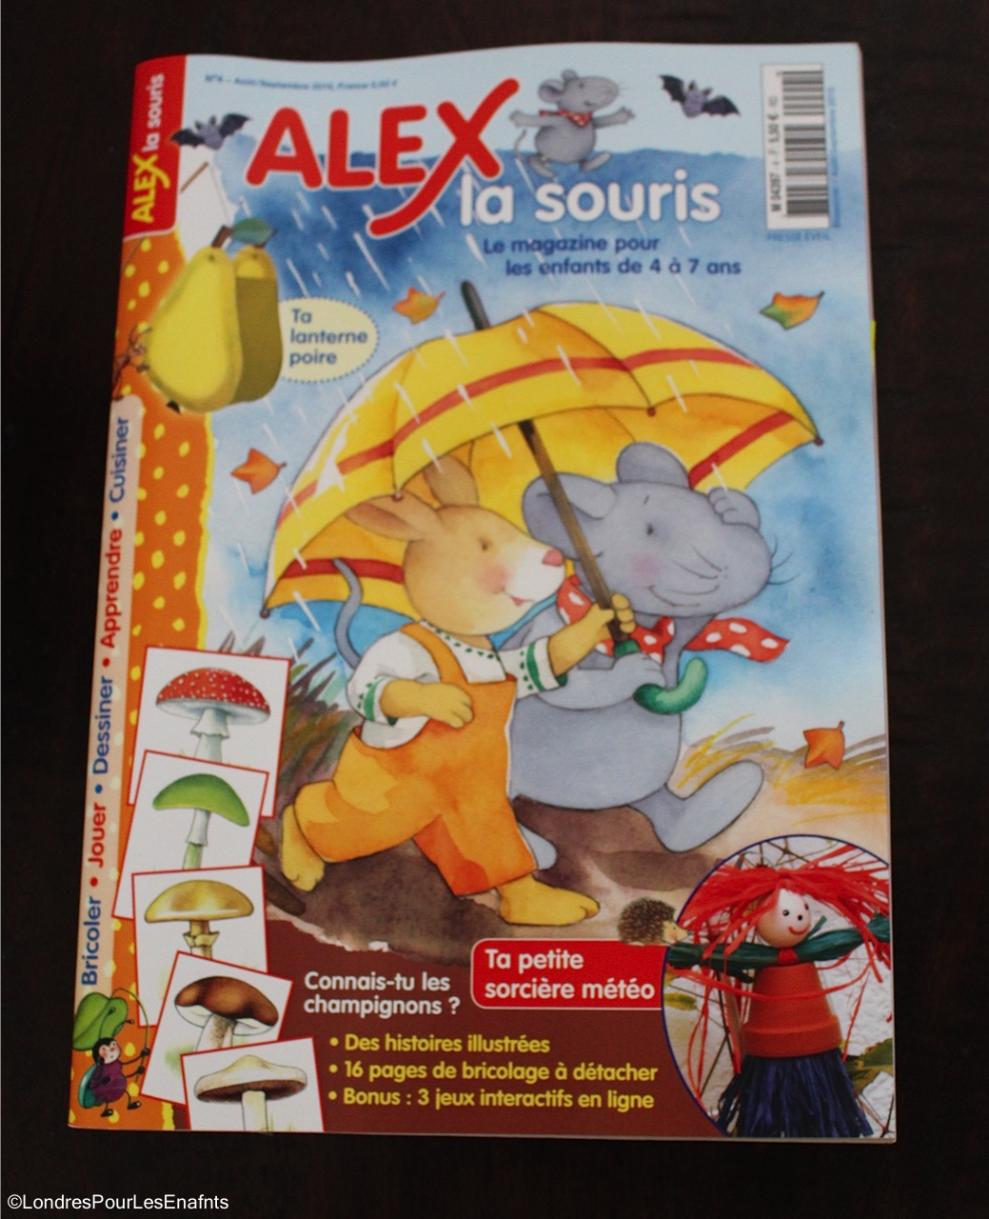 Alex magazine, avis